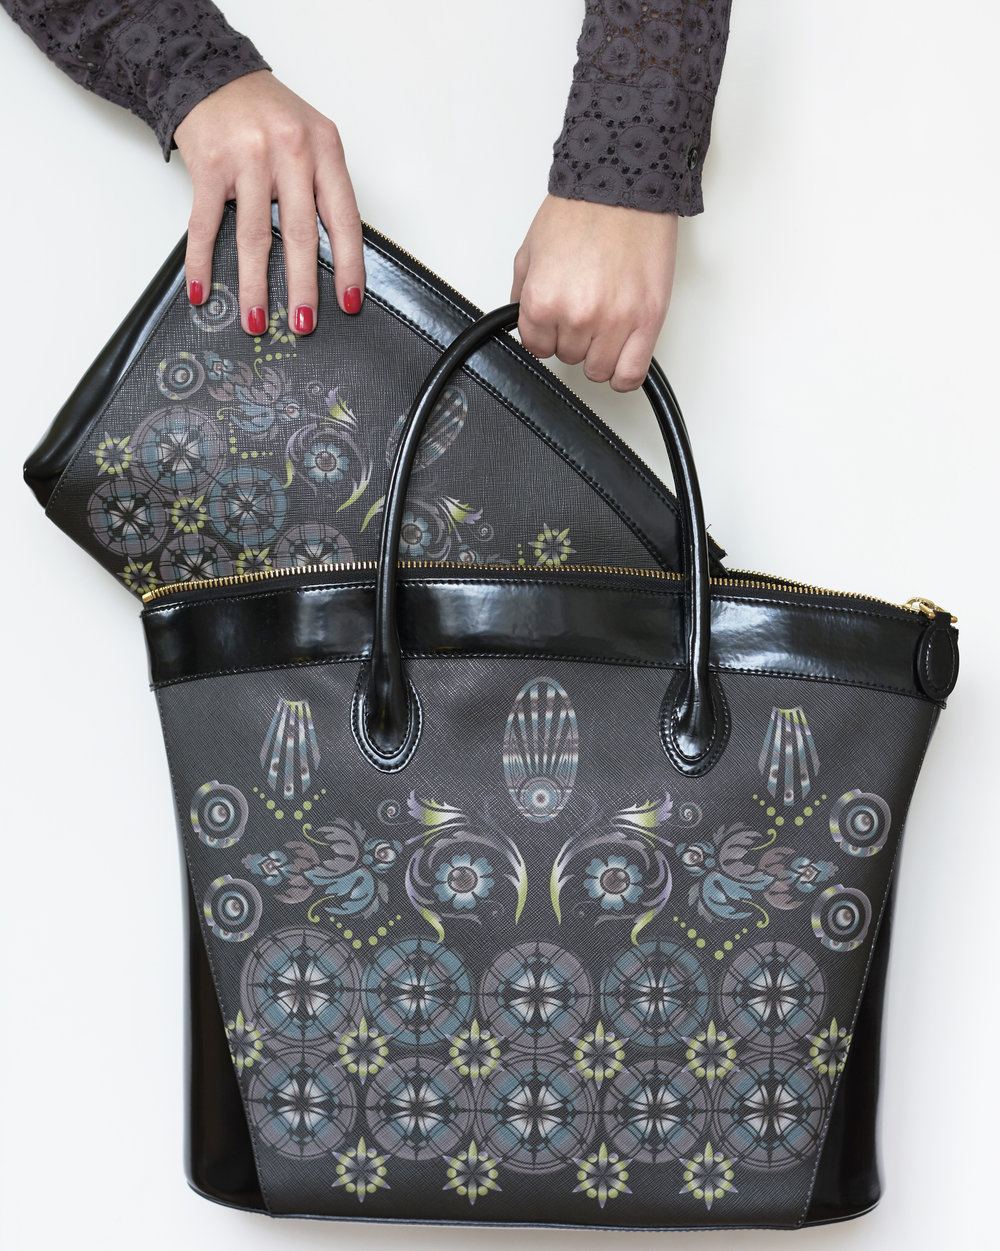 Large Tote and Clutch in black